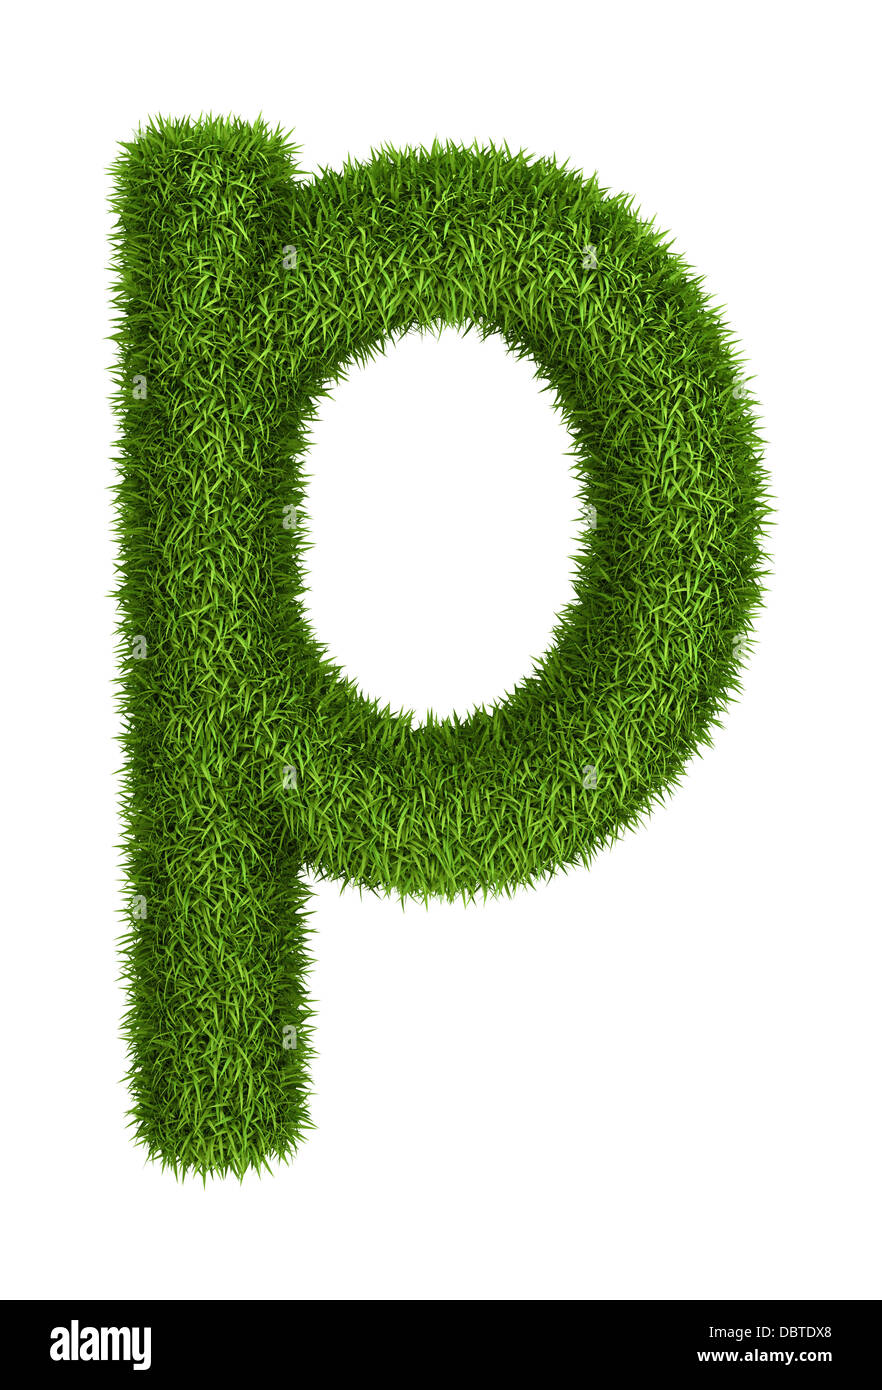 Natural Grass Letter P Lowercase